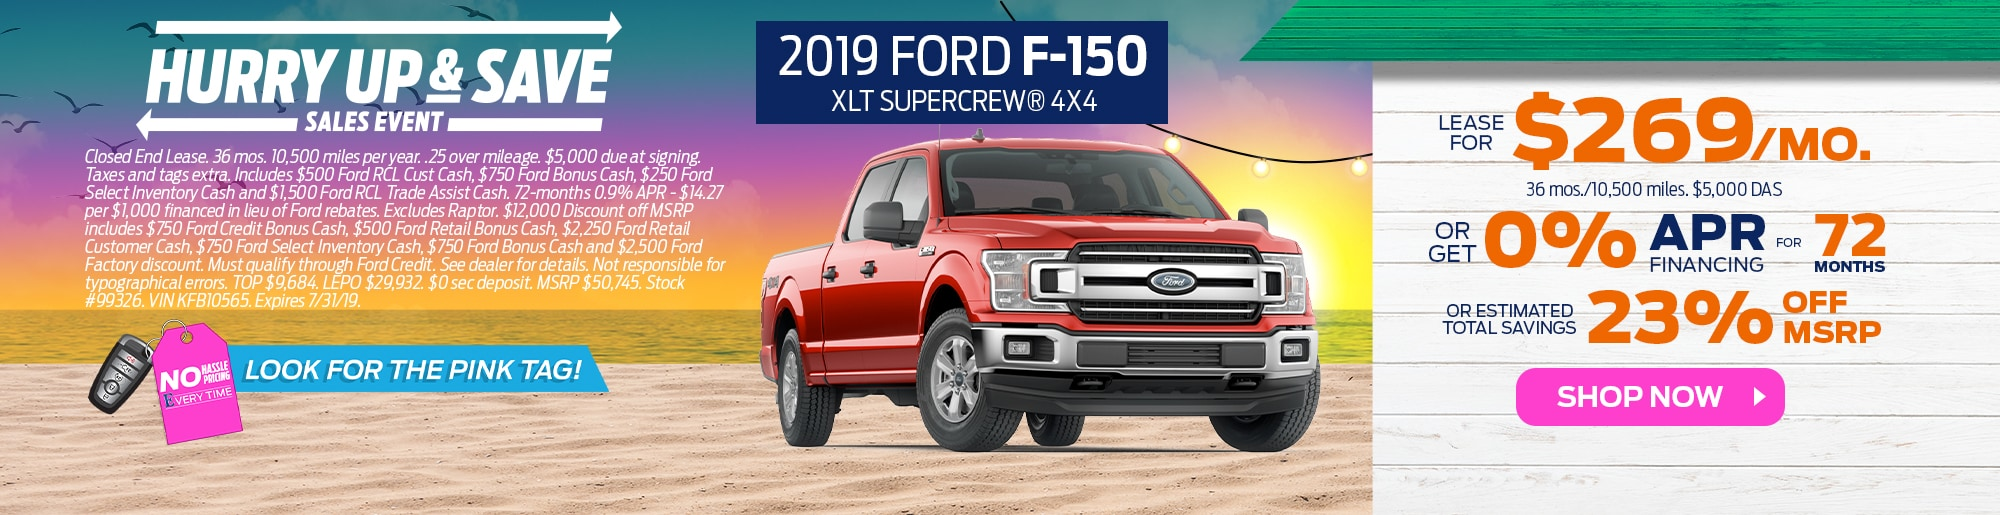 Ford Dealers Nj >> Monthly Specials Echelon Ford Ford Dealers Near Me